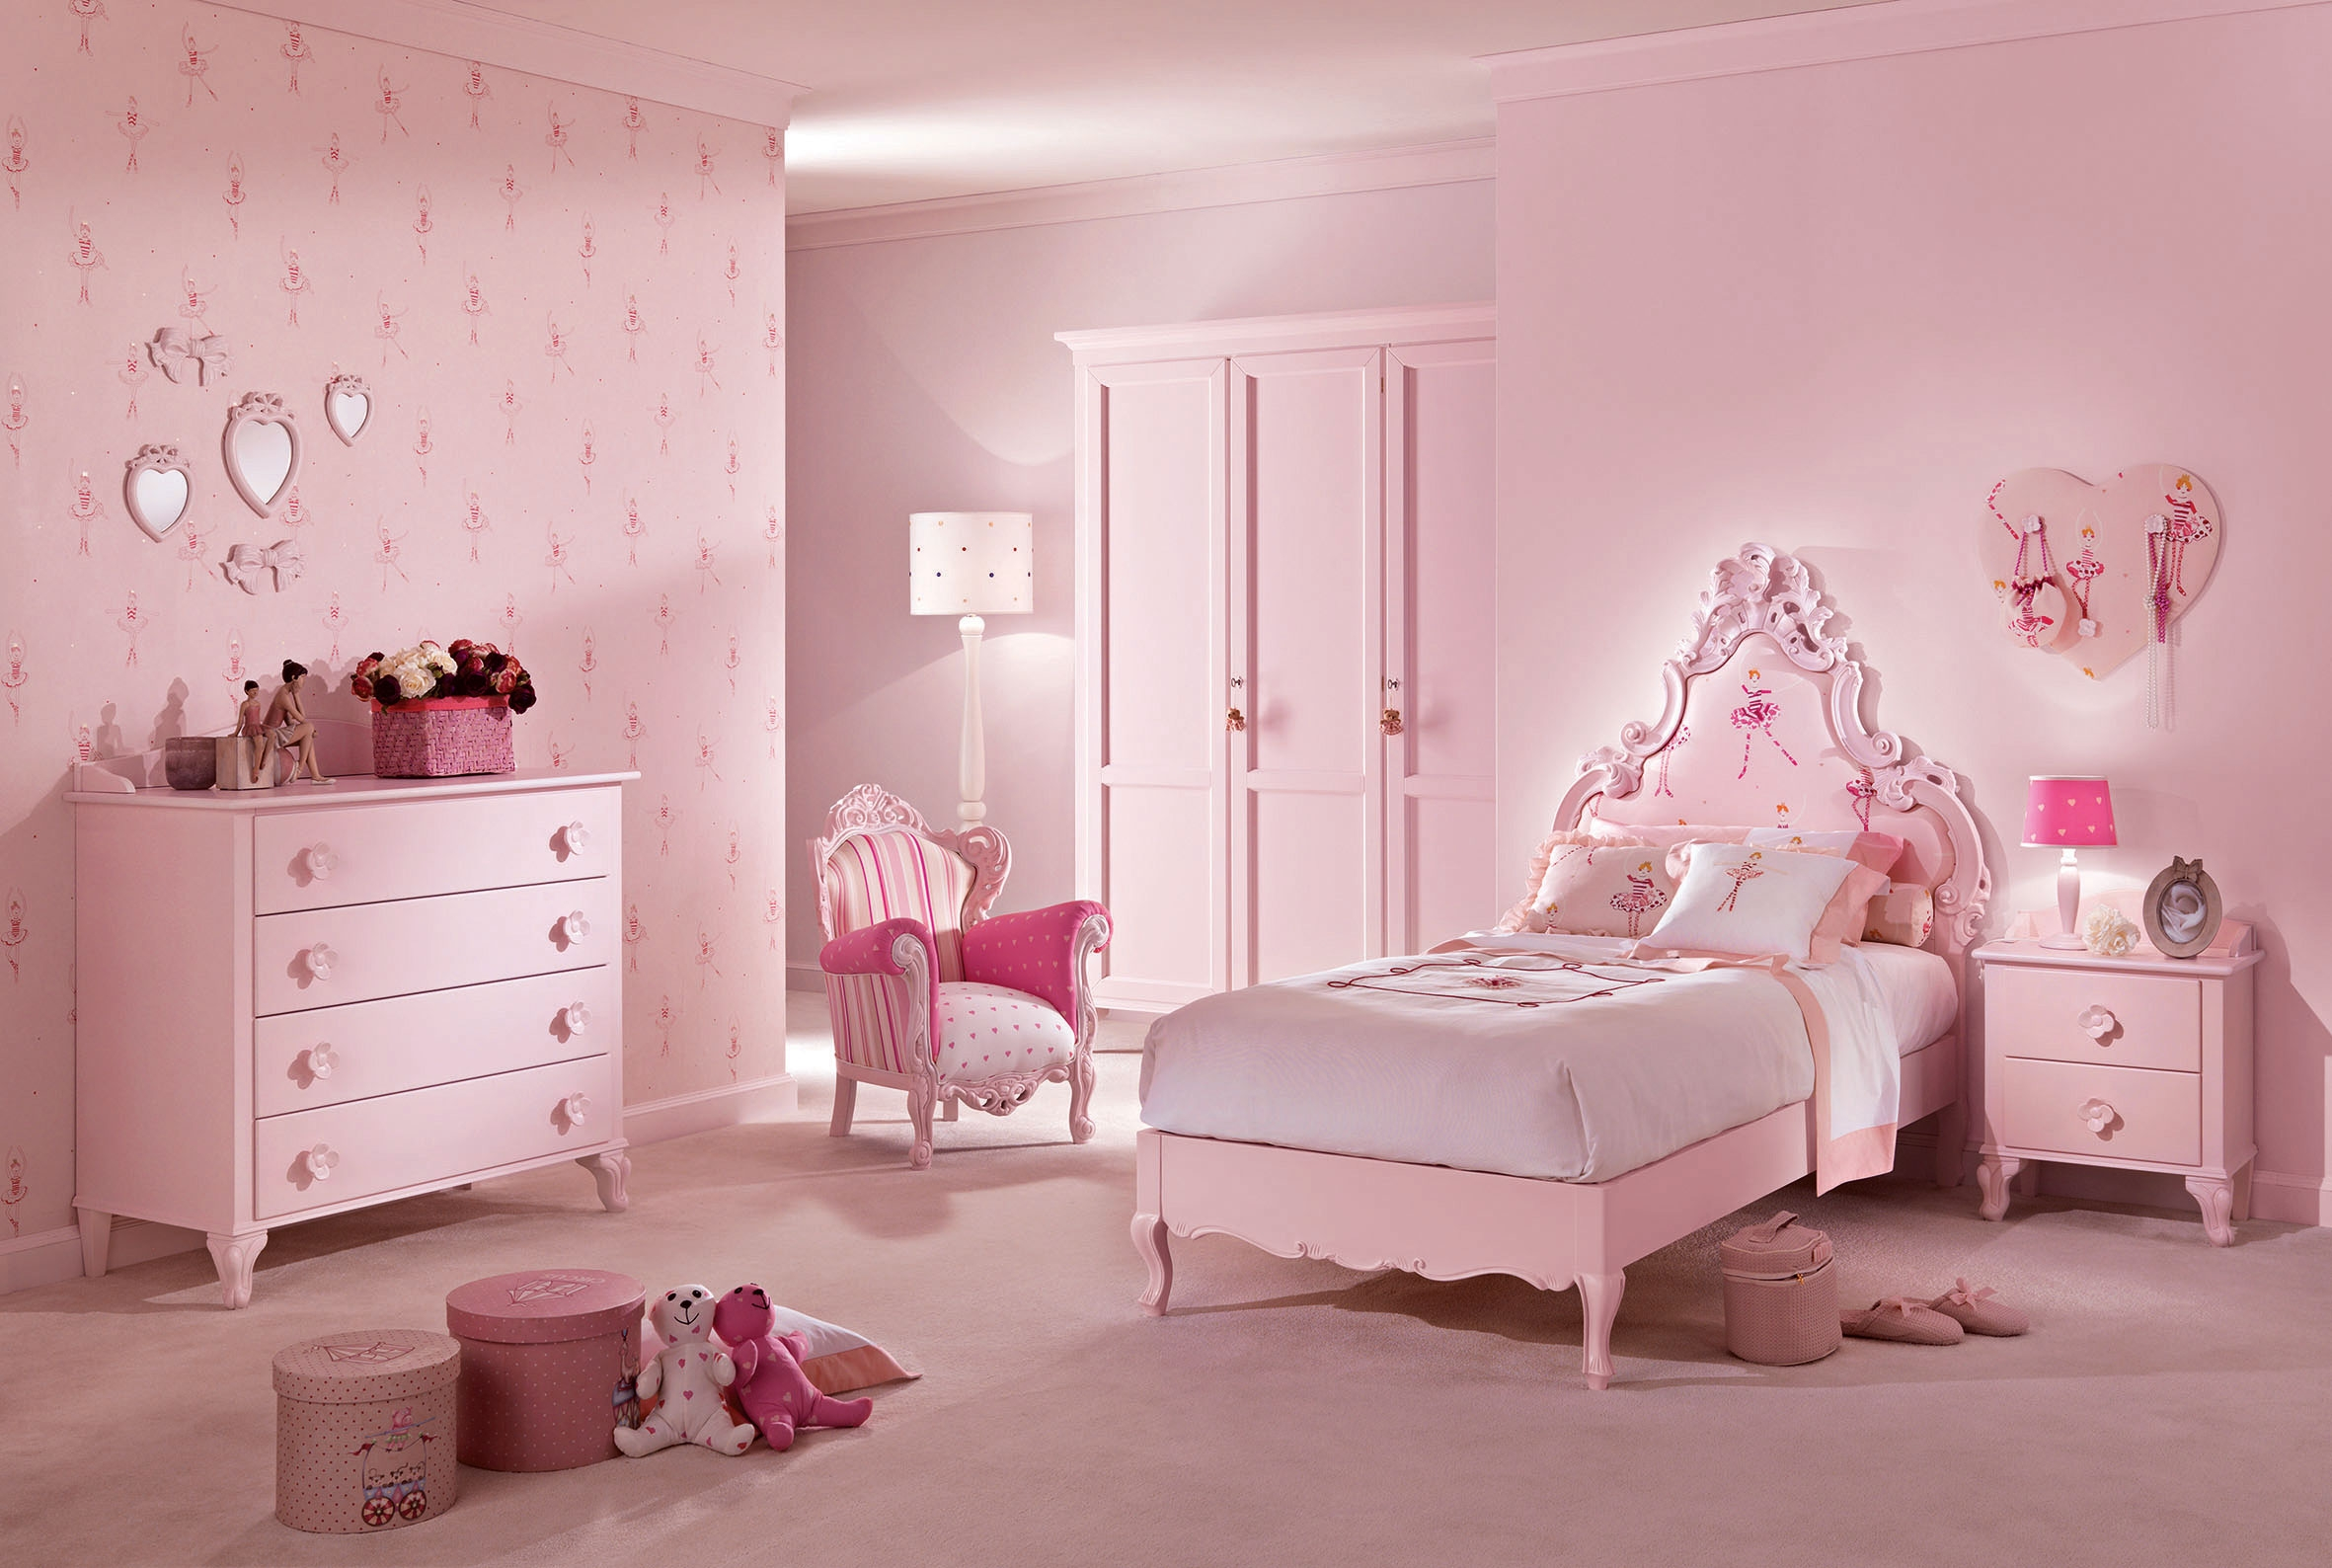 lit princesse mod le c cile rose pastel piermaria so nuit. Black Bedroom Furniture Sets. Home Design Ideas